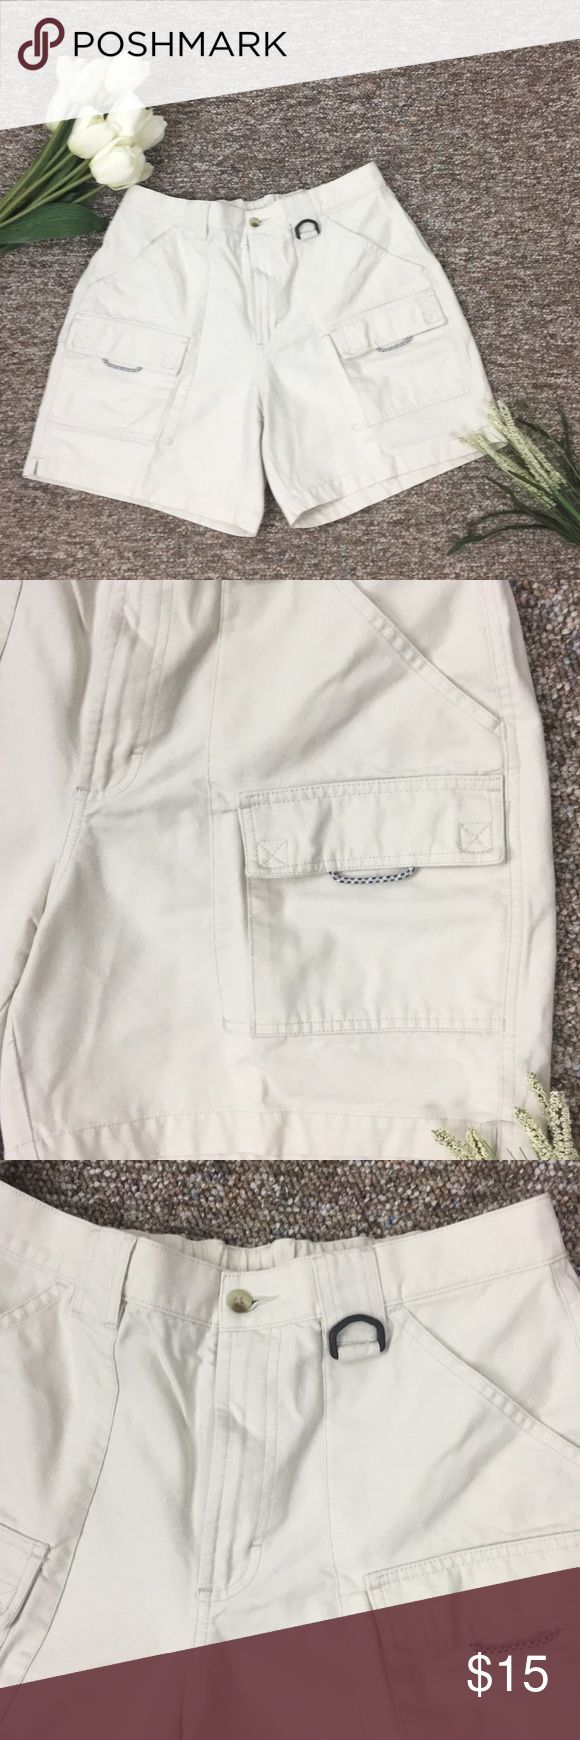 Columbia Sportswear Shorts Size Large Columbia Sportswear Company Womens Proformance Fishing Gear Shorts. Size 6 Cream.    K-9-1 Columbia Sportswear Company Shorts